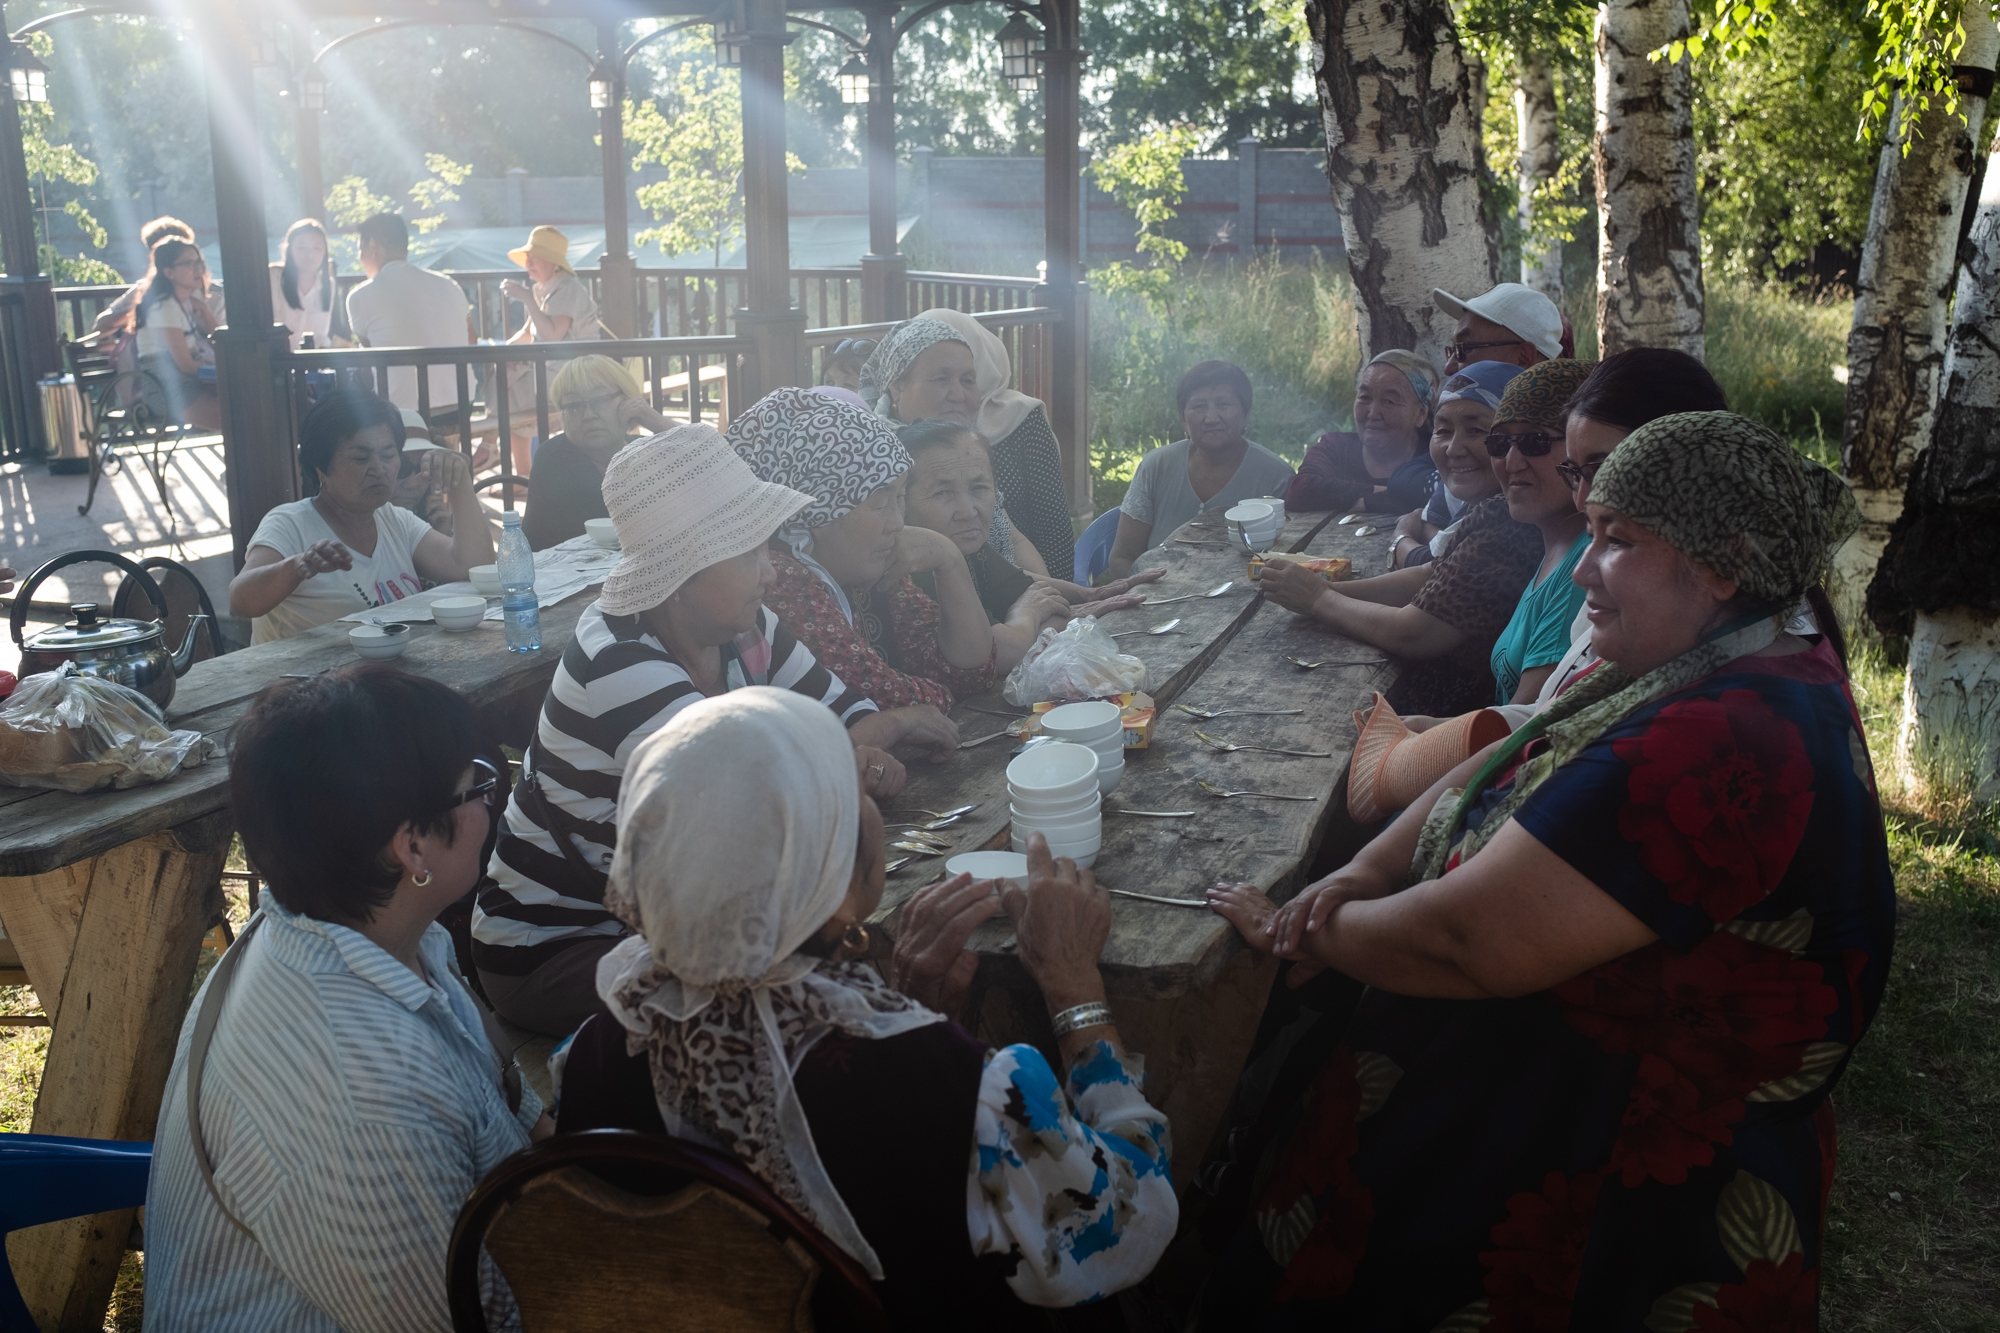 older people pulled up chairs to discuss politics and prepared snacks and tea for new arrivals